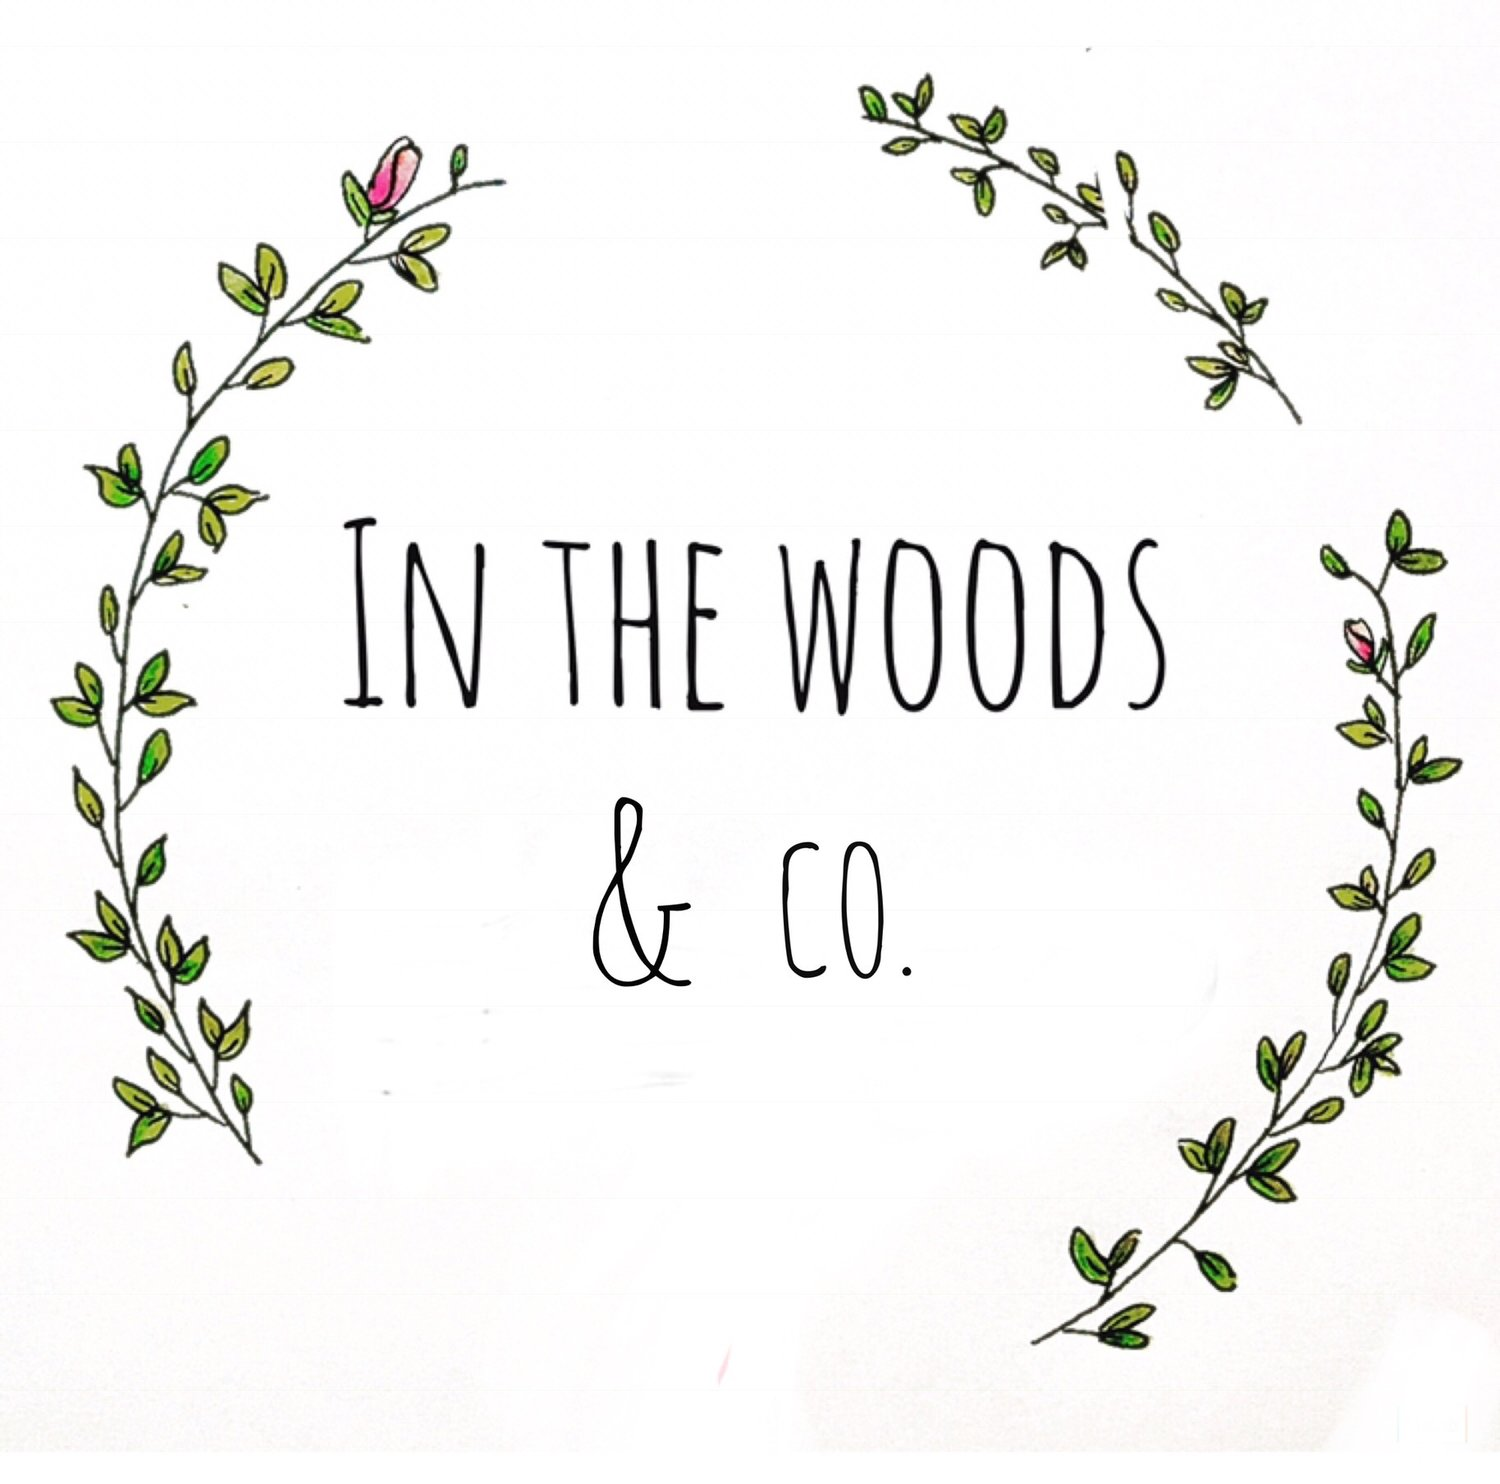 IN THE WOODS & CO